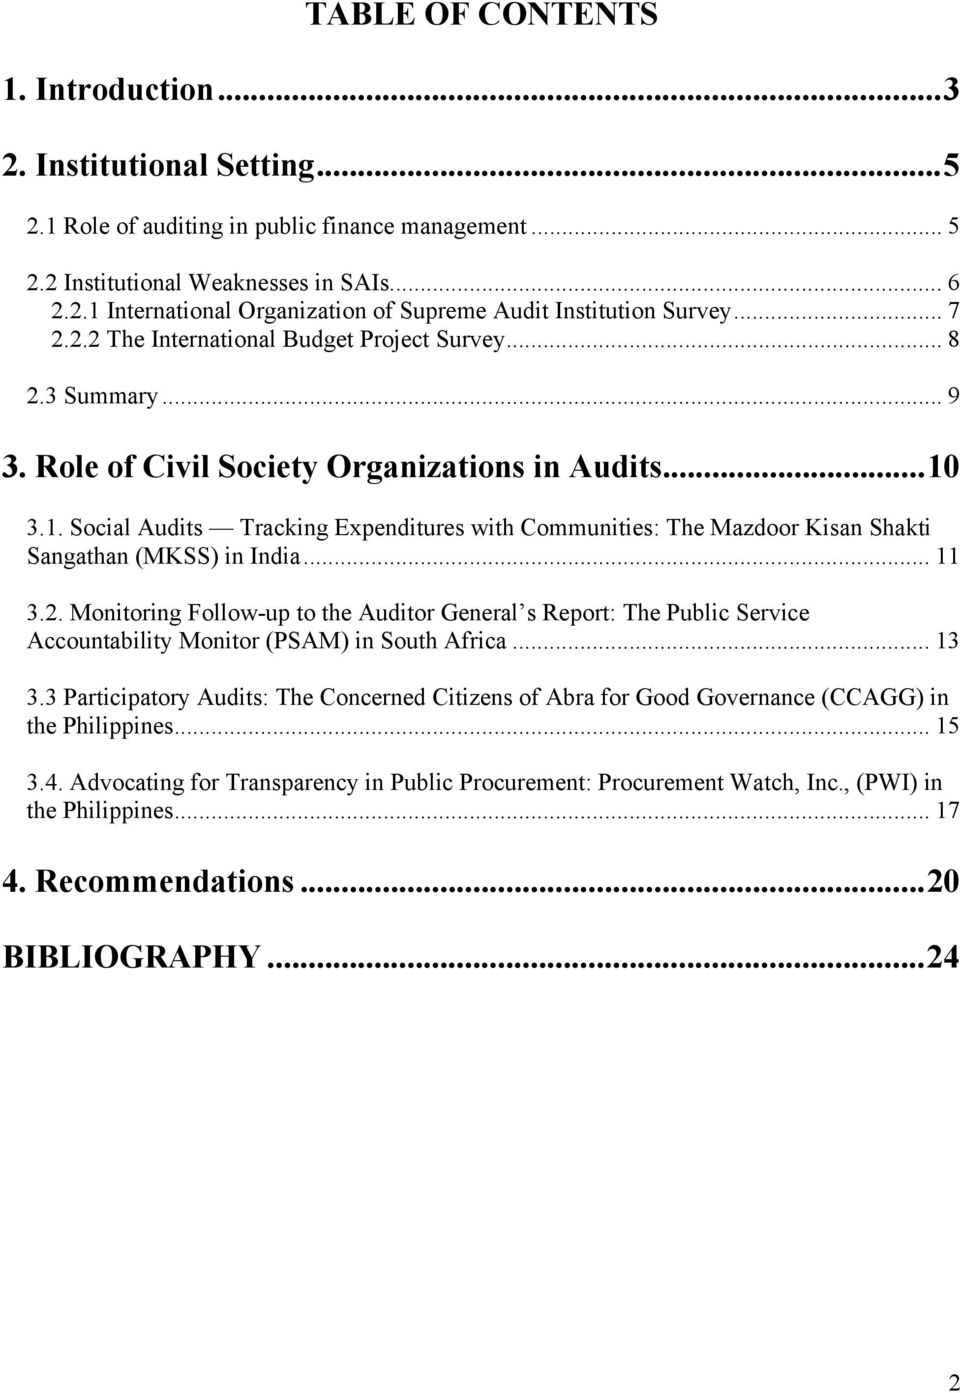 3.1. Social Audits Tracking Expenditures with Communities: The Mazdoor Kisan Shakti Sangathan (MKSS) in India... 11 3.2.